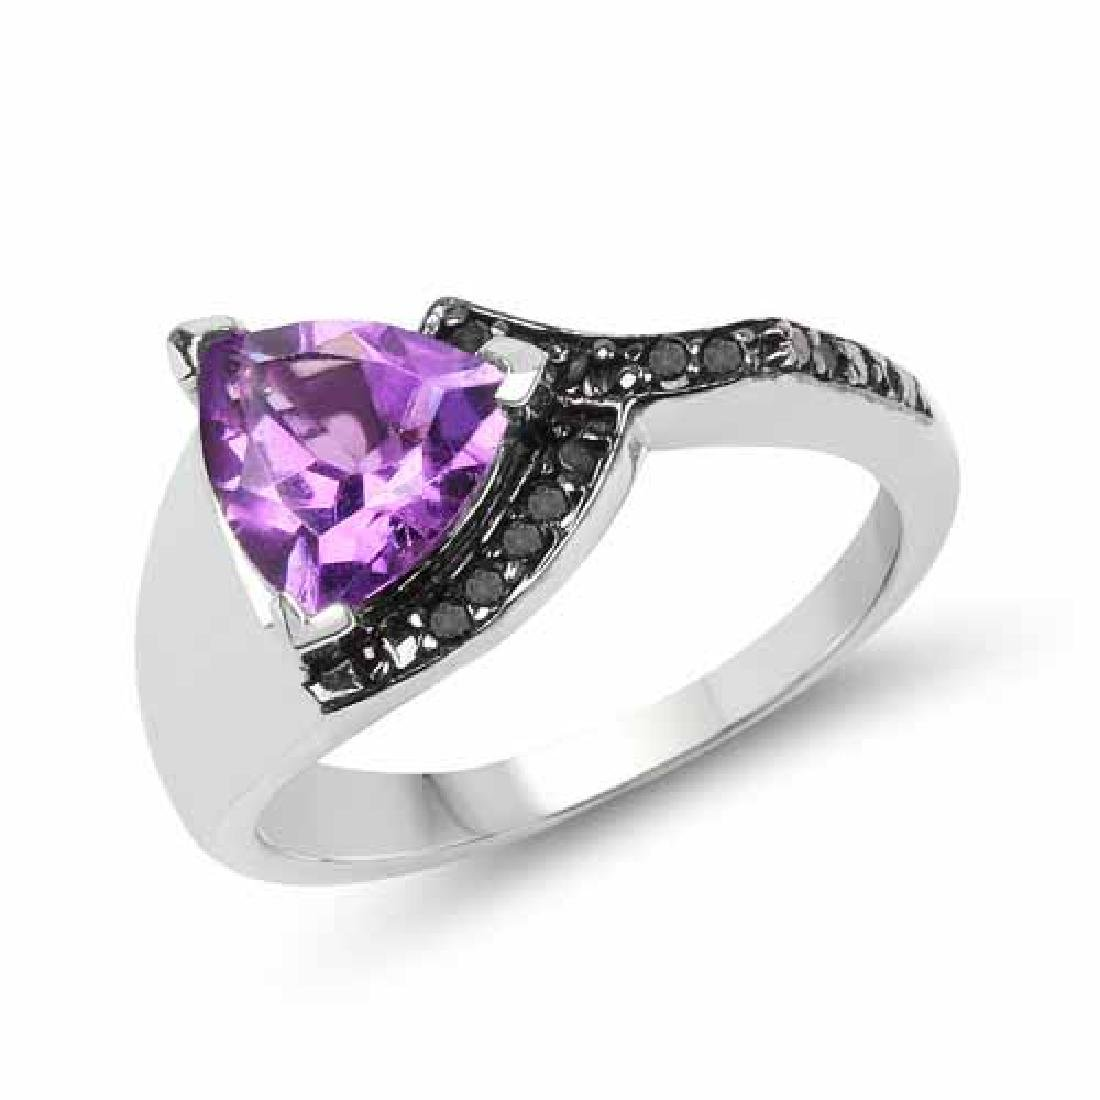 1.55 Carat Genuine Amethyst and Black Diamond .925 Ster